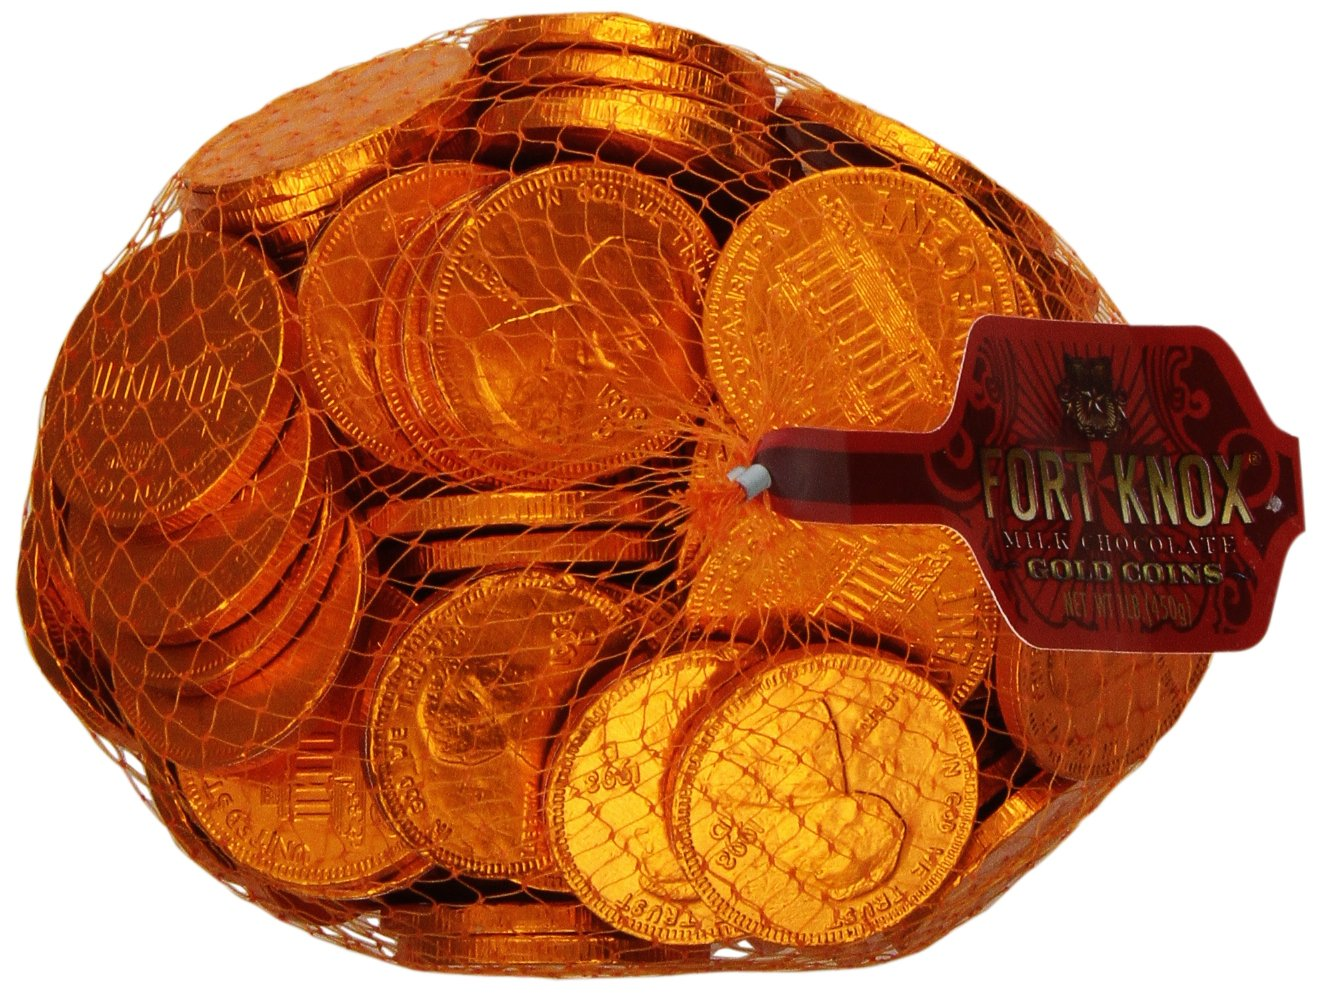 Fort Knox Chocolate Coins, Large Pennies,16-Ounce Bag: Amazon.com ...